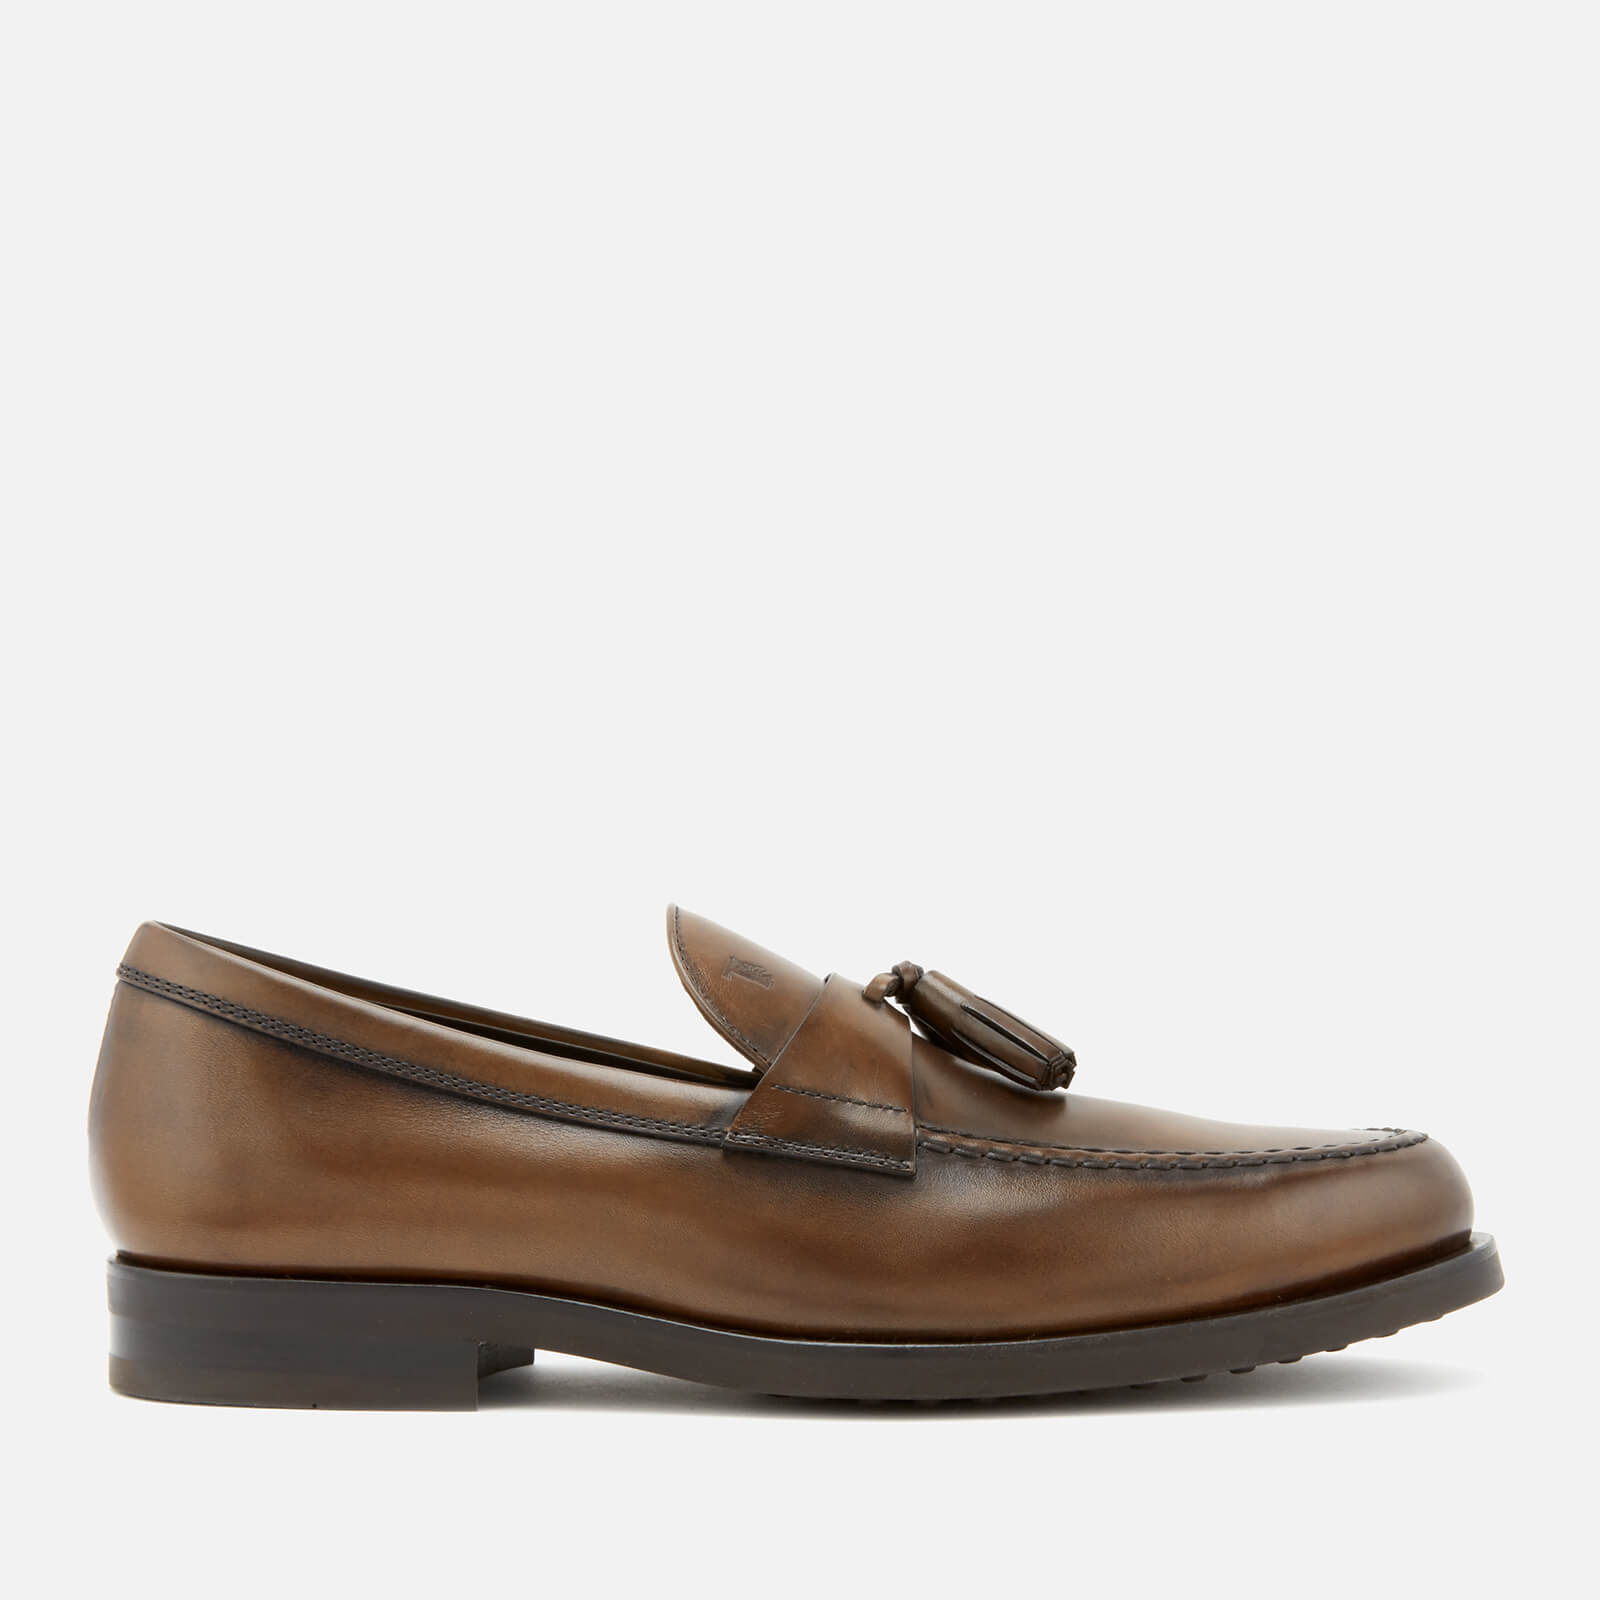 97d29db5ffc Tod s Men s Leather Tassel Loafers - Brown - Free UK Delivery over £50